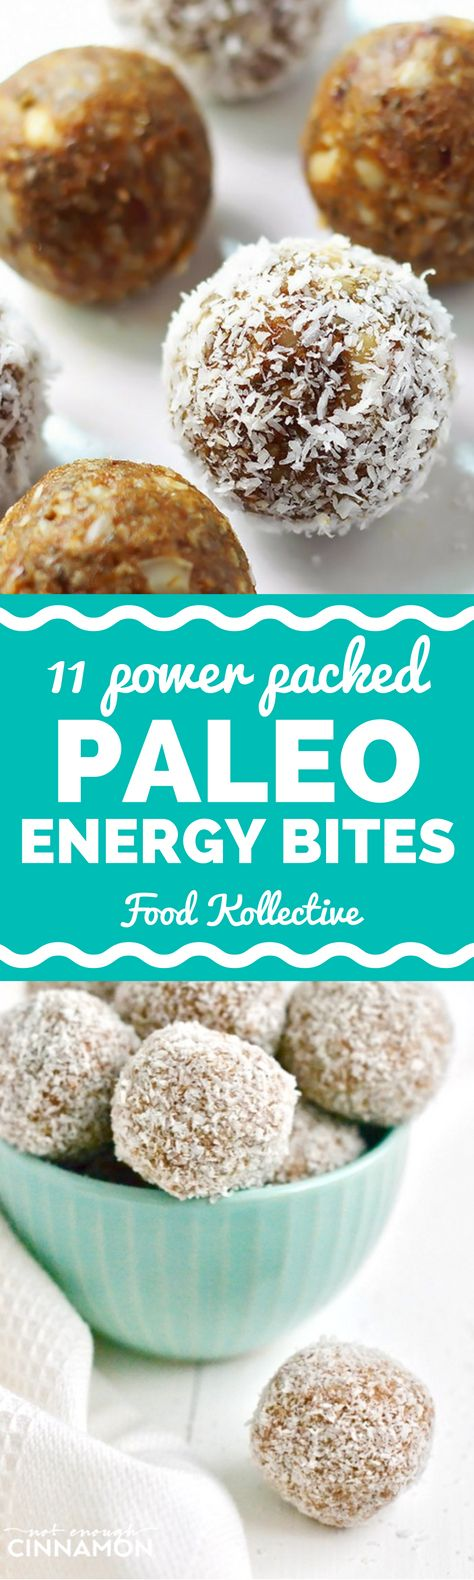 I was looking for no bake vegan Paleo energy bites and these look sooo good! They are also gluten free and packed with protein, so they'll give you the quick energy boost you need. There are recipes flavored like pumpkin pie, banana bread, chocolate brownies, and more. I can't wait to make these for a quick and easy healthy snack! Collected on FoodKollective.com